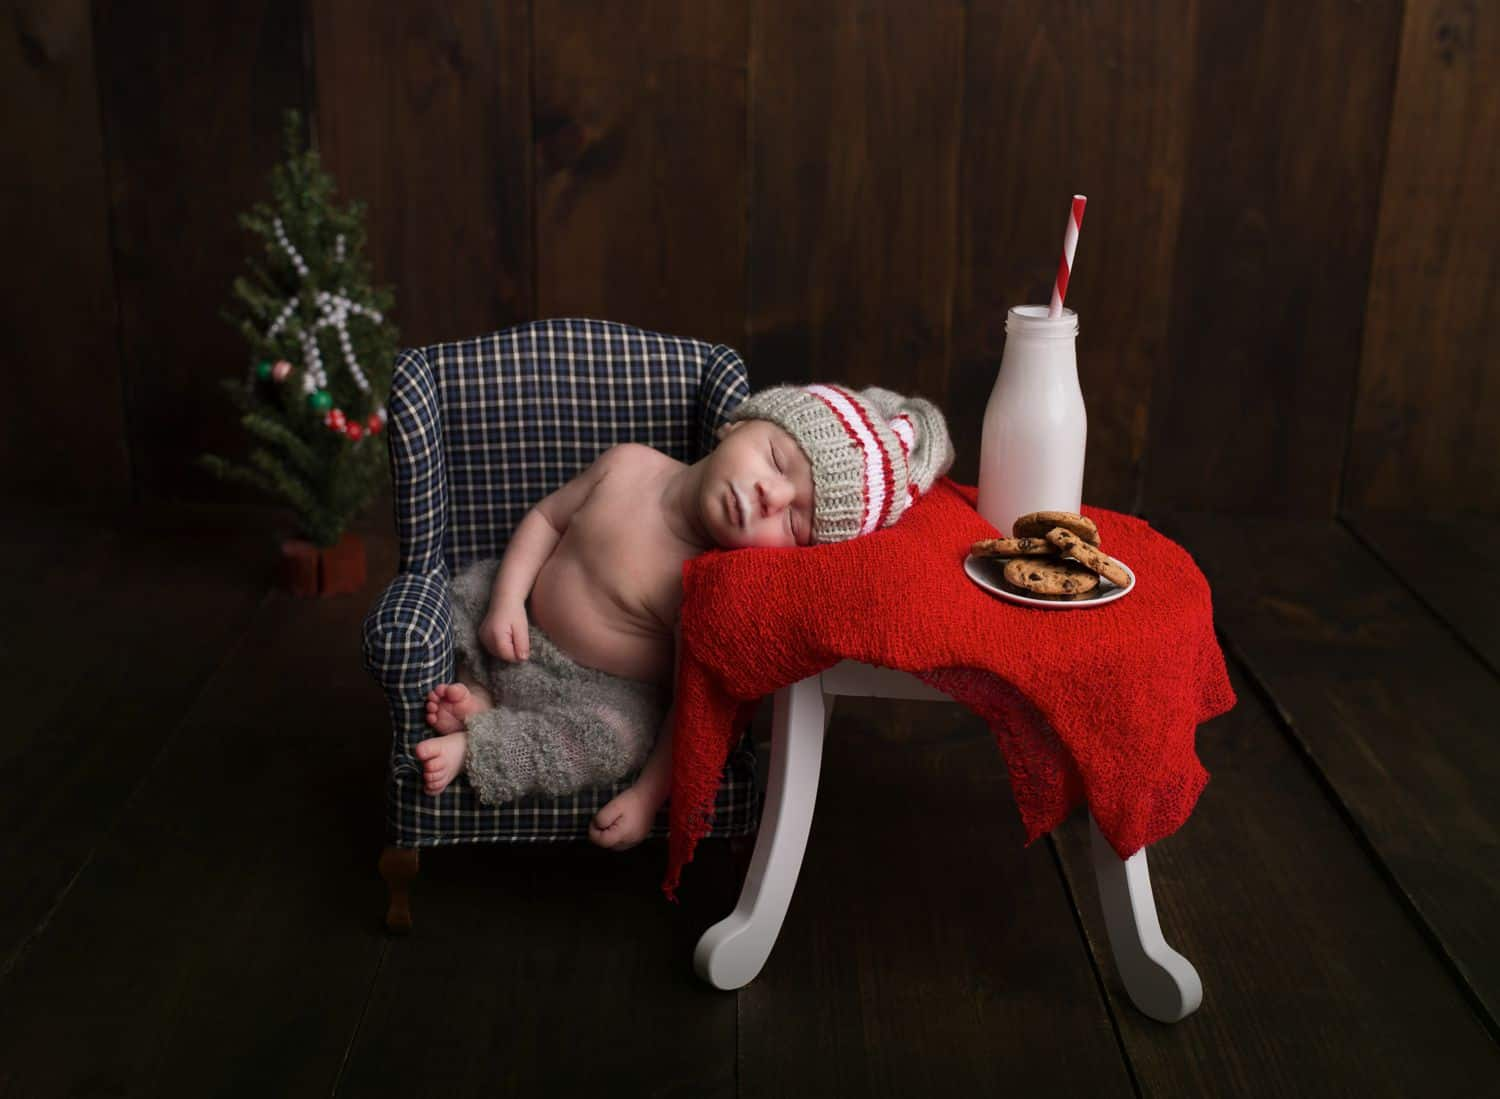 A tiny baby is posed with newborn photography props: a tiny chair and table topped with a red cloth, a bottle of milk, and a plate of miniature cookies.